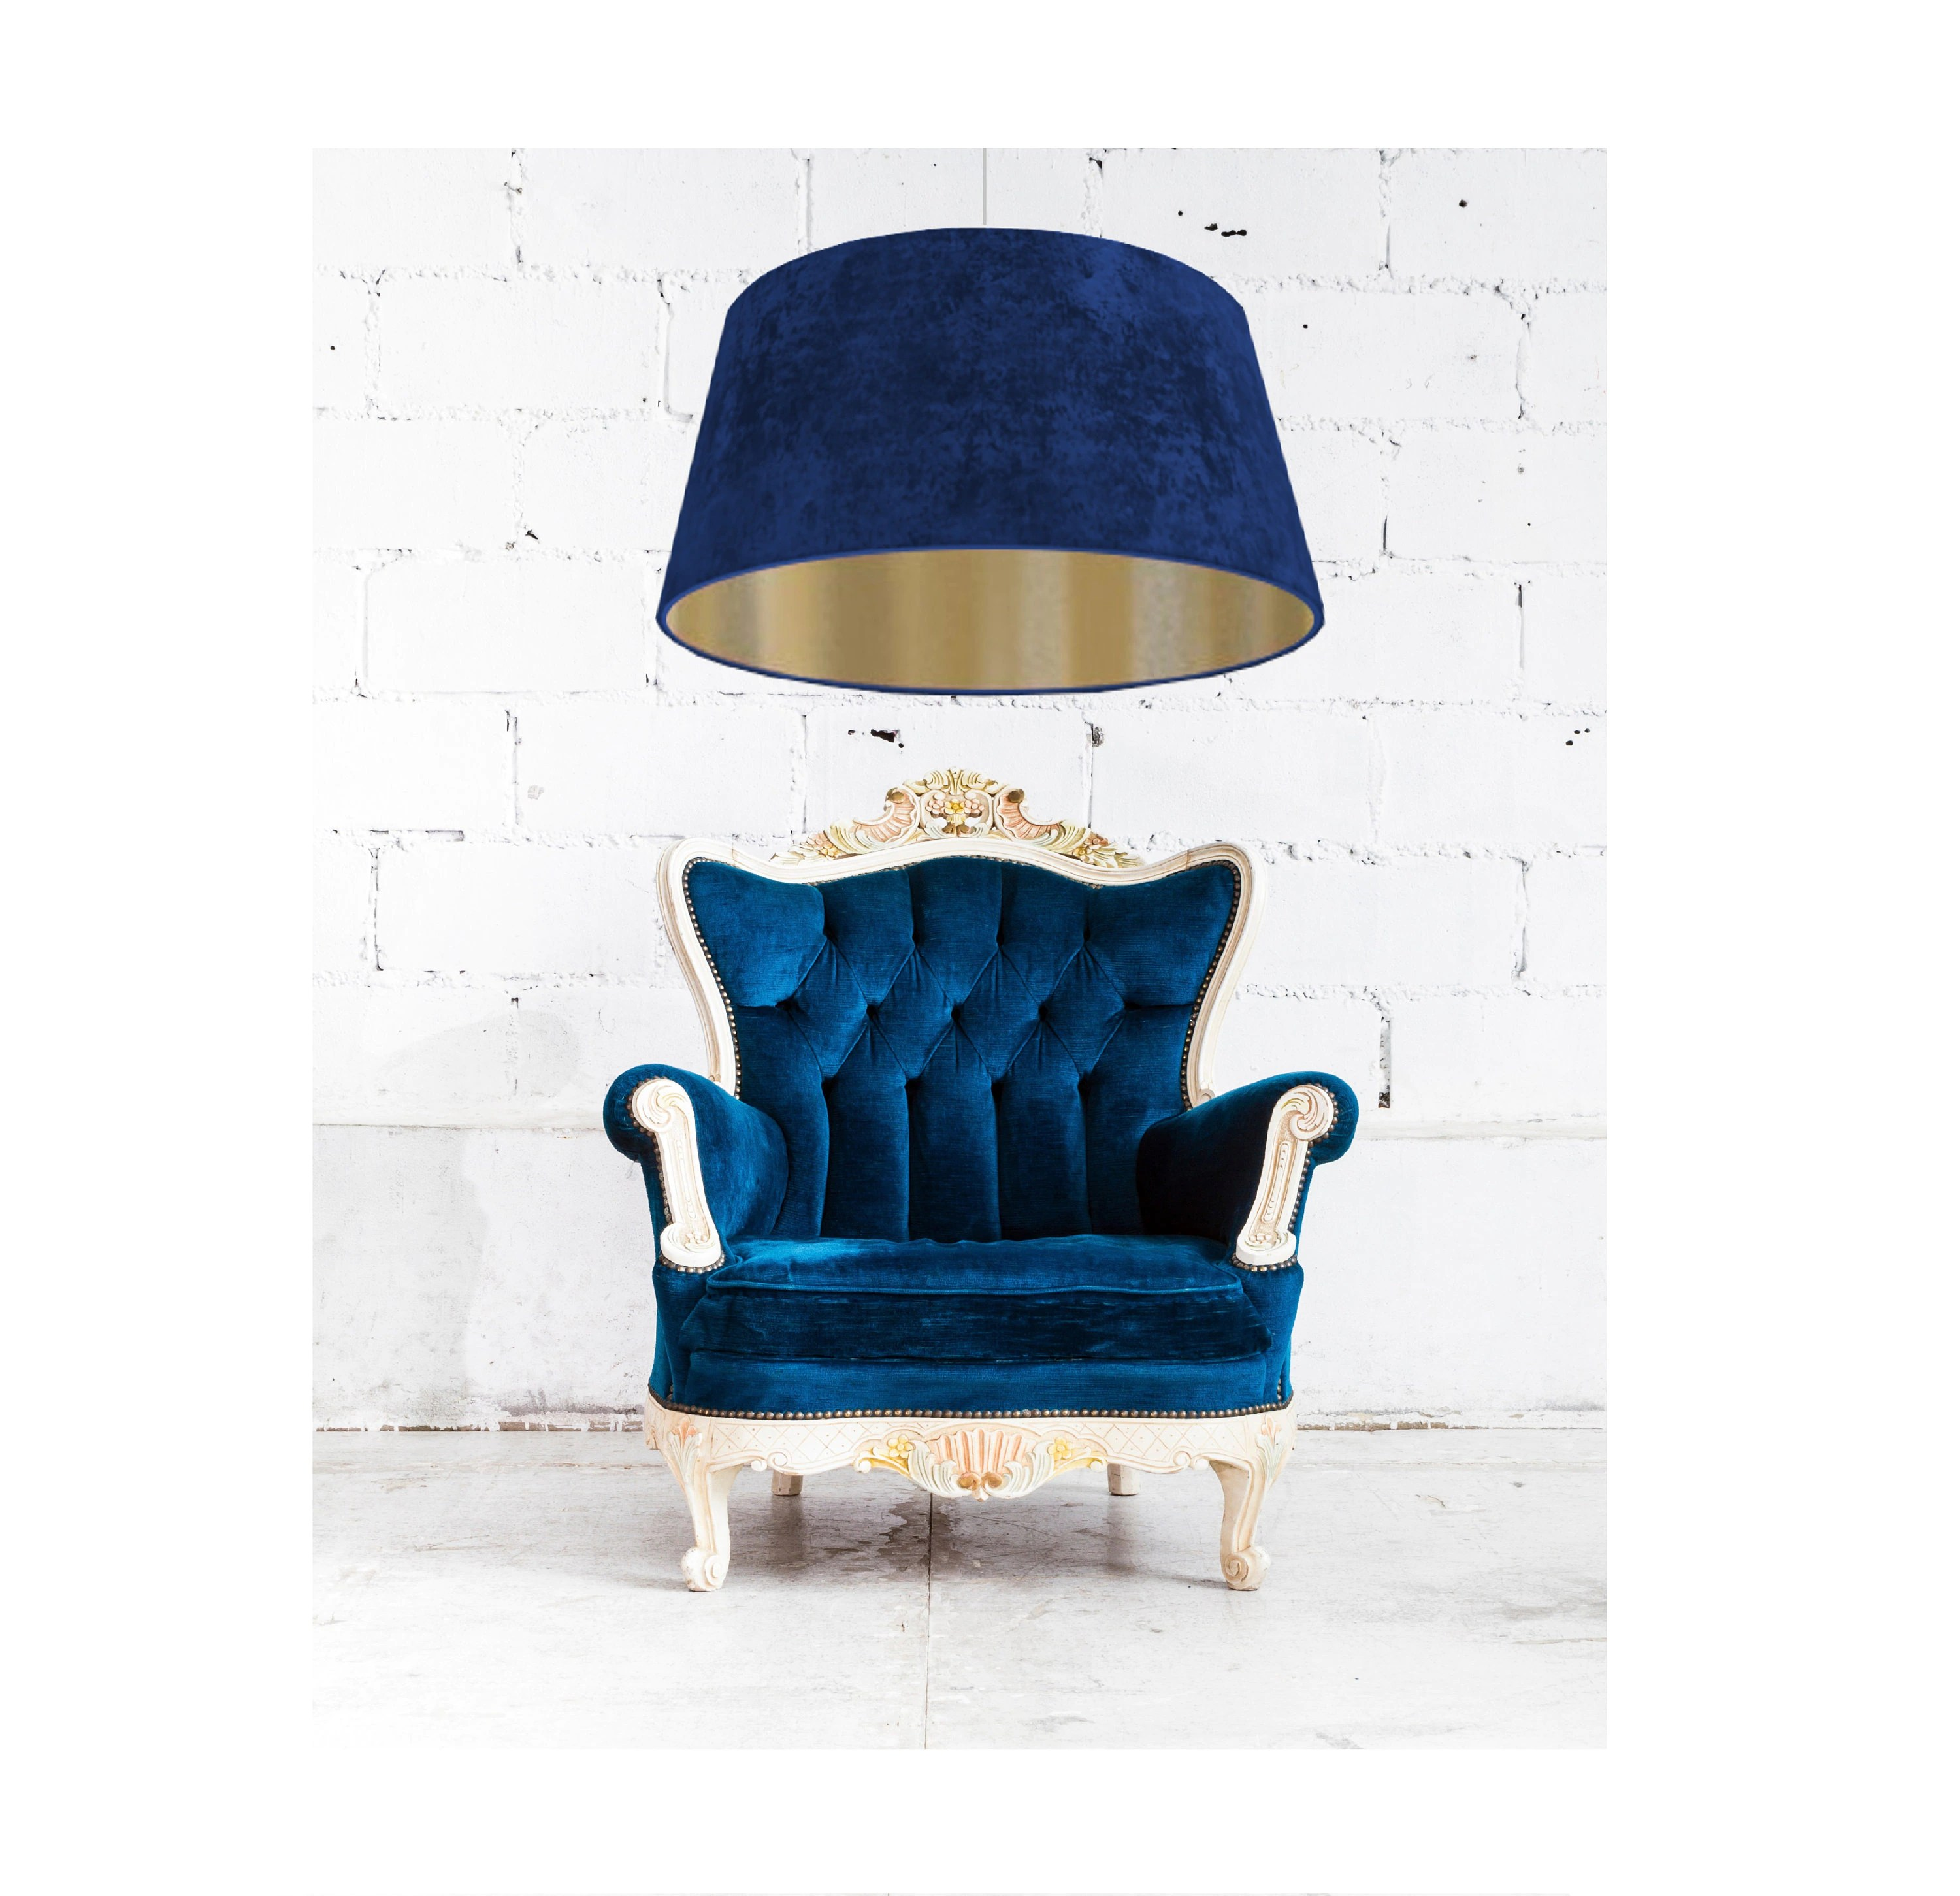 Lichthaus Worpswede Lamp Shade Gold And Velvet Conical Ø 60 70 Navy